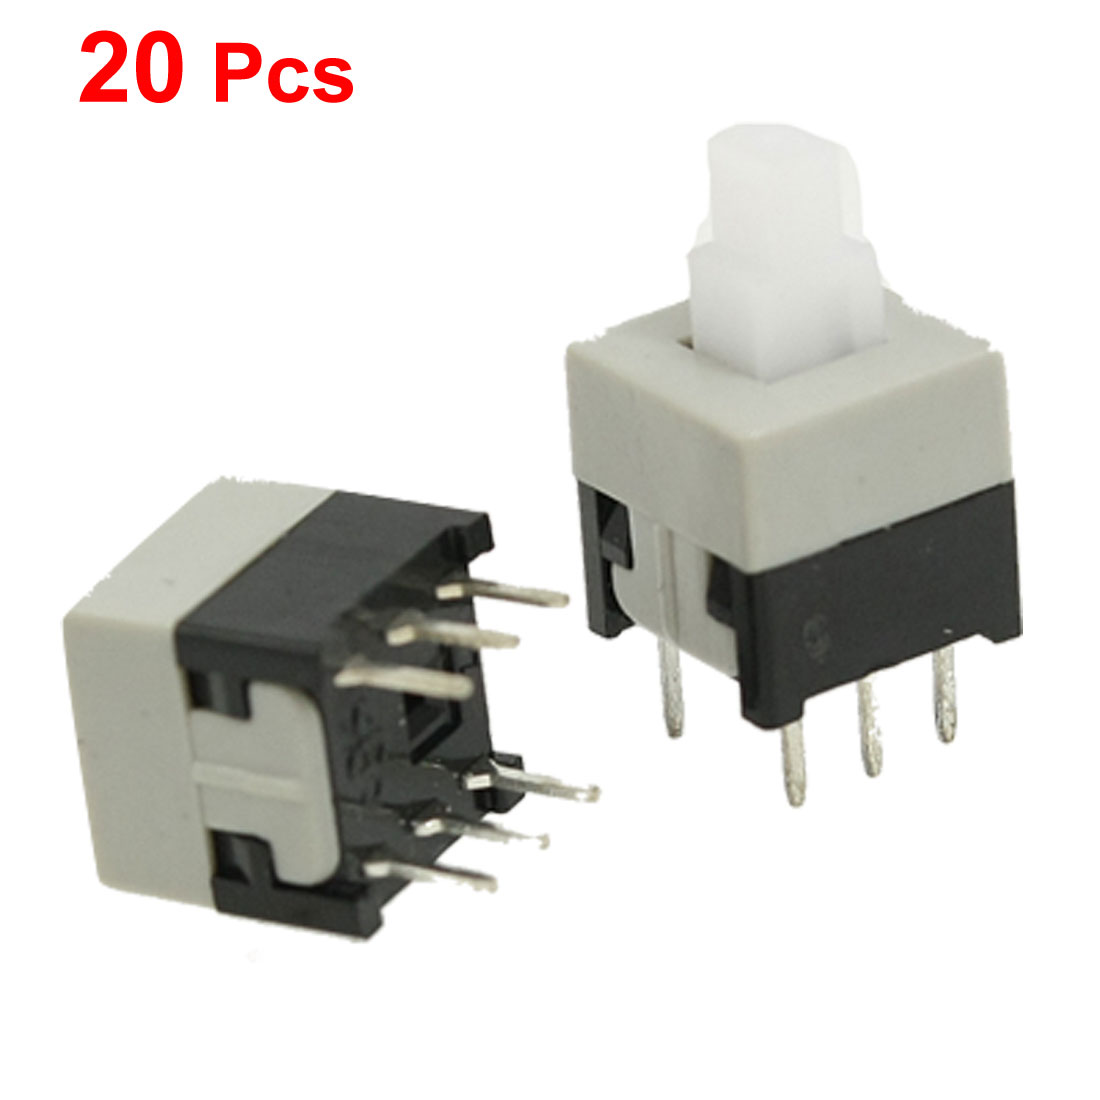 20 Pcs 8.5mm x 8.5mm Square Momentary Push Button Switch for Flashlight